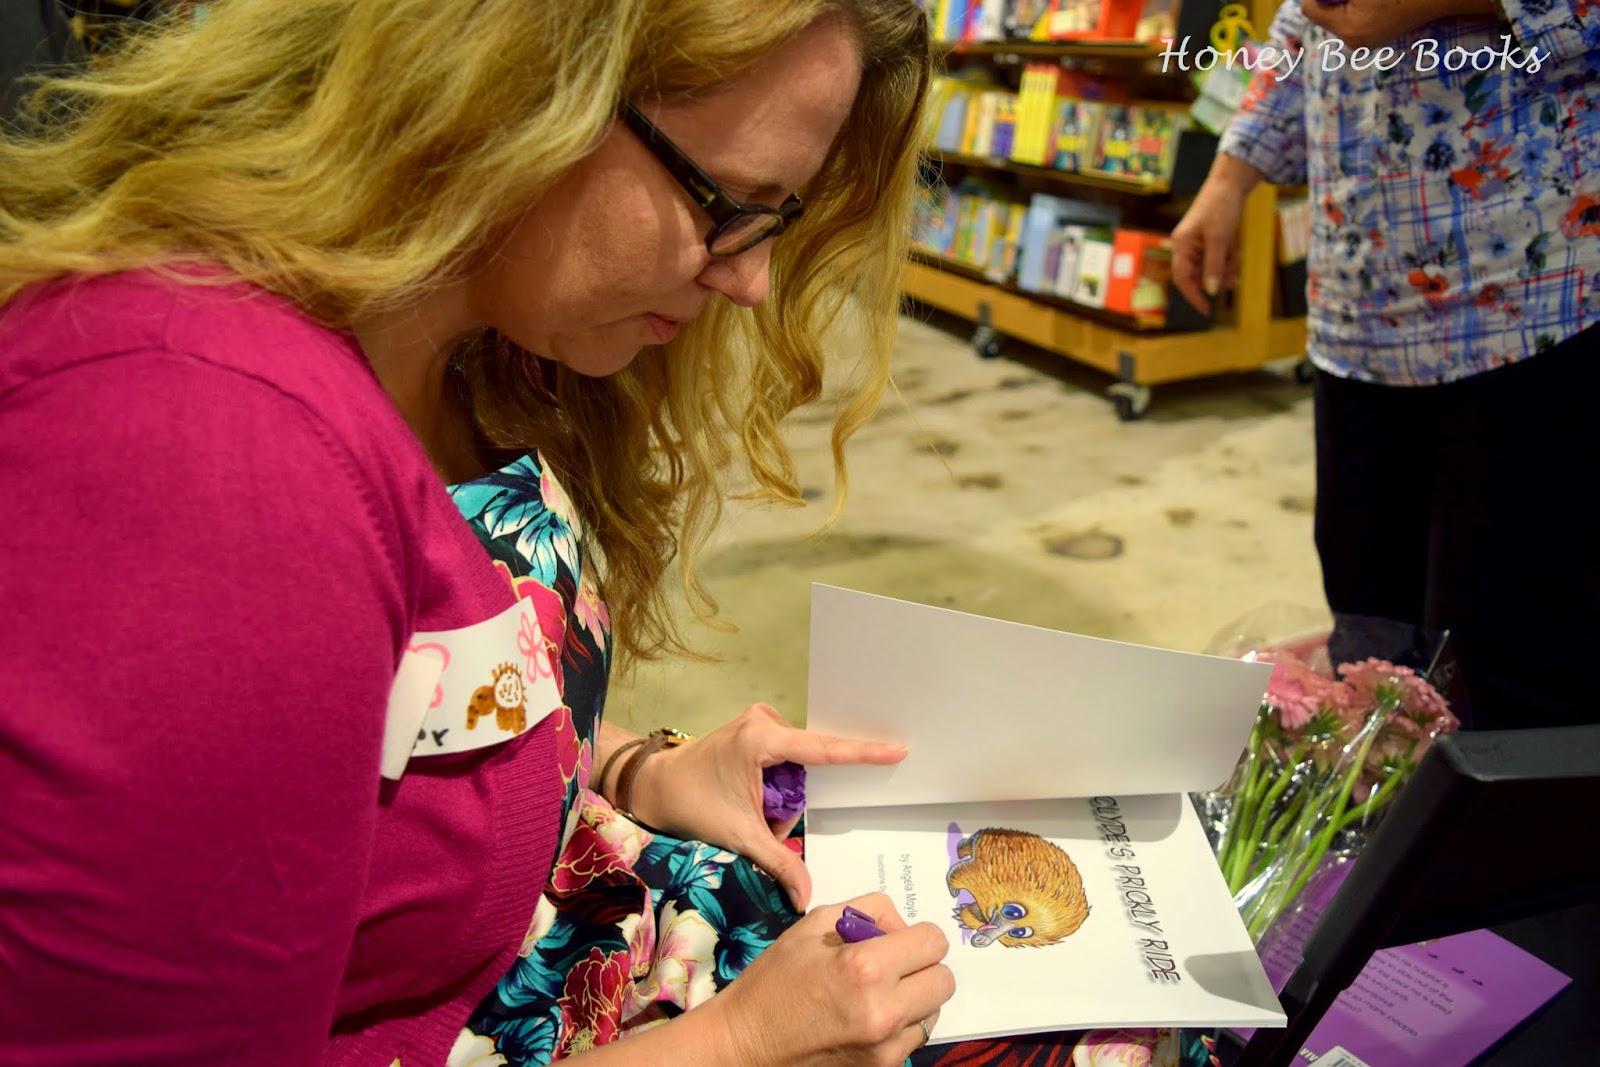 Canberra Author Angela Moyle signing a copy of Clyde's Prickly Ride